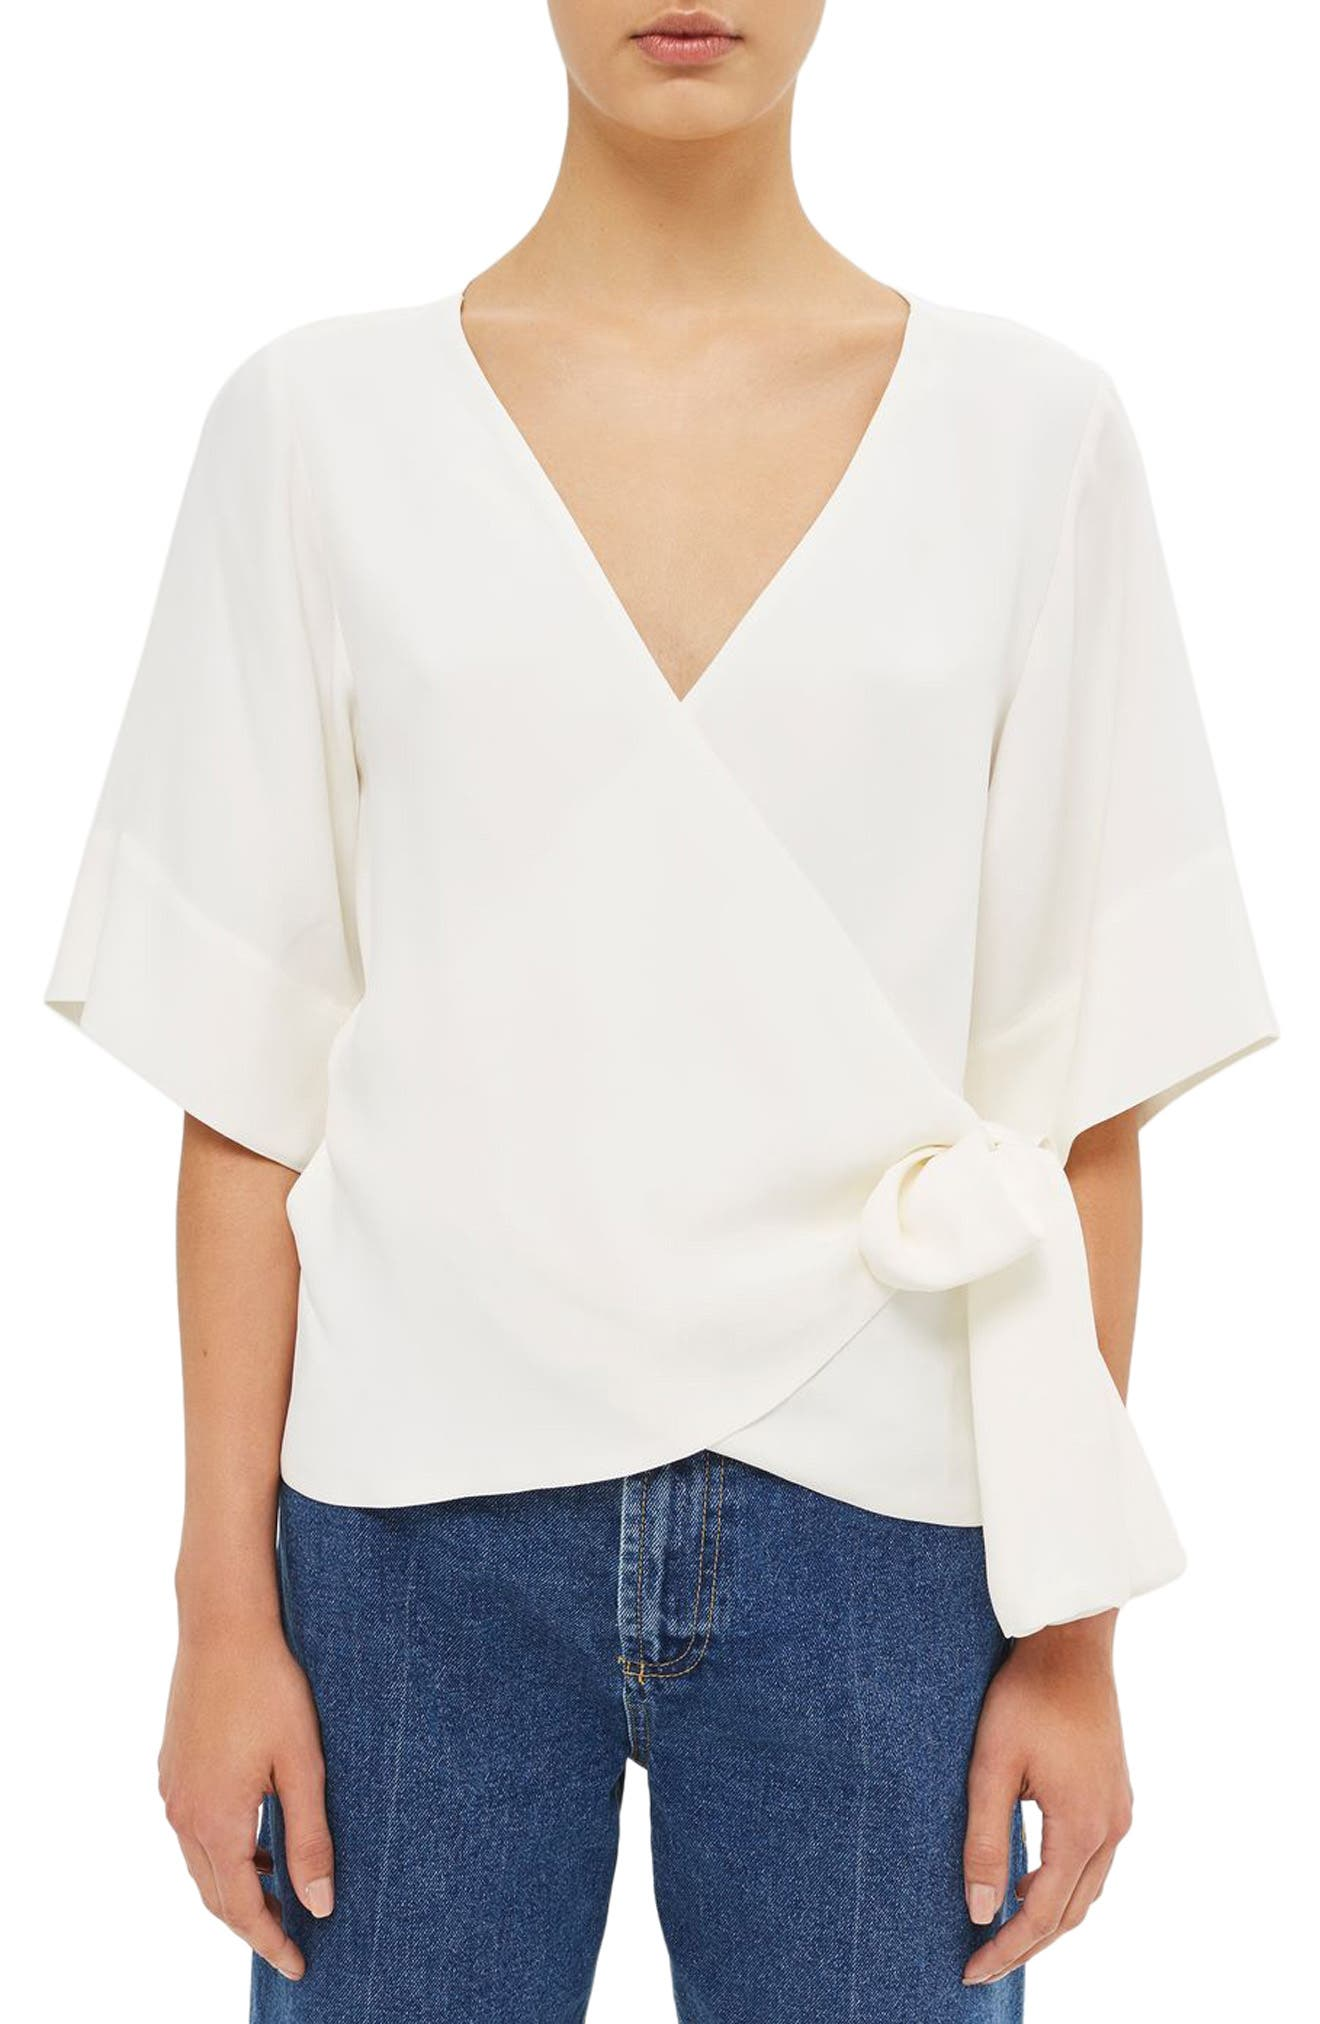 Alternate Image 1 Selected - Topshop Boutique Crepe Wrap Top